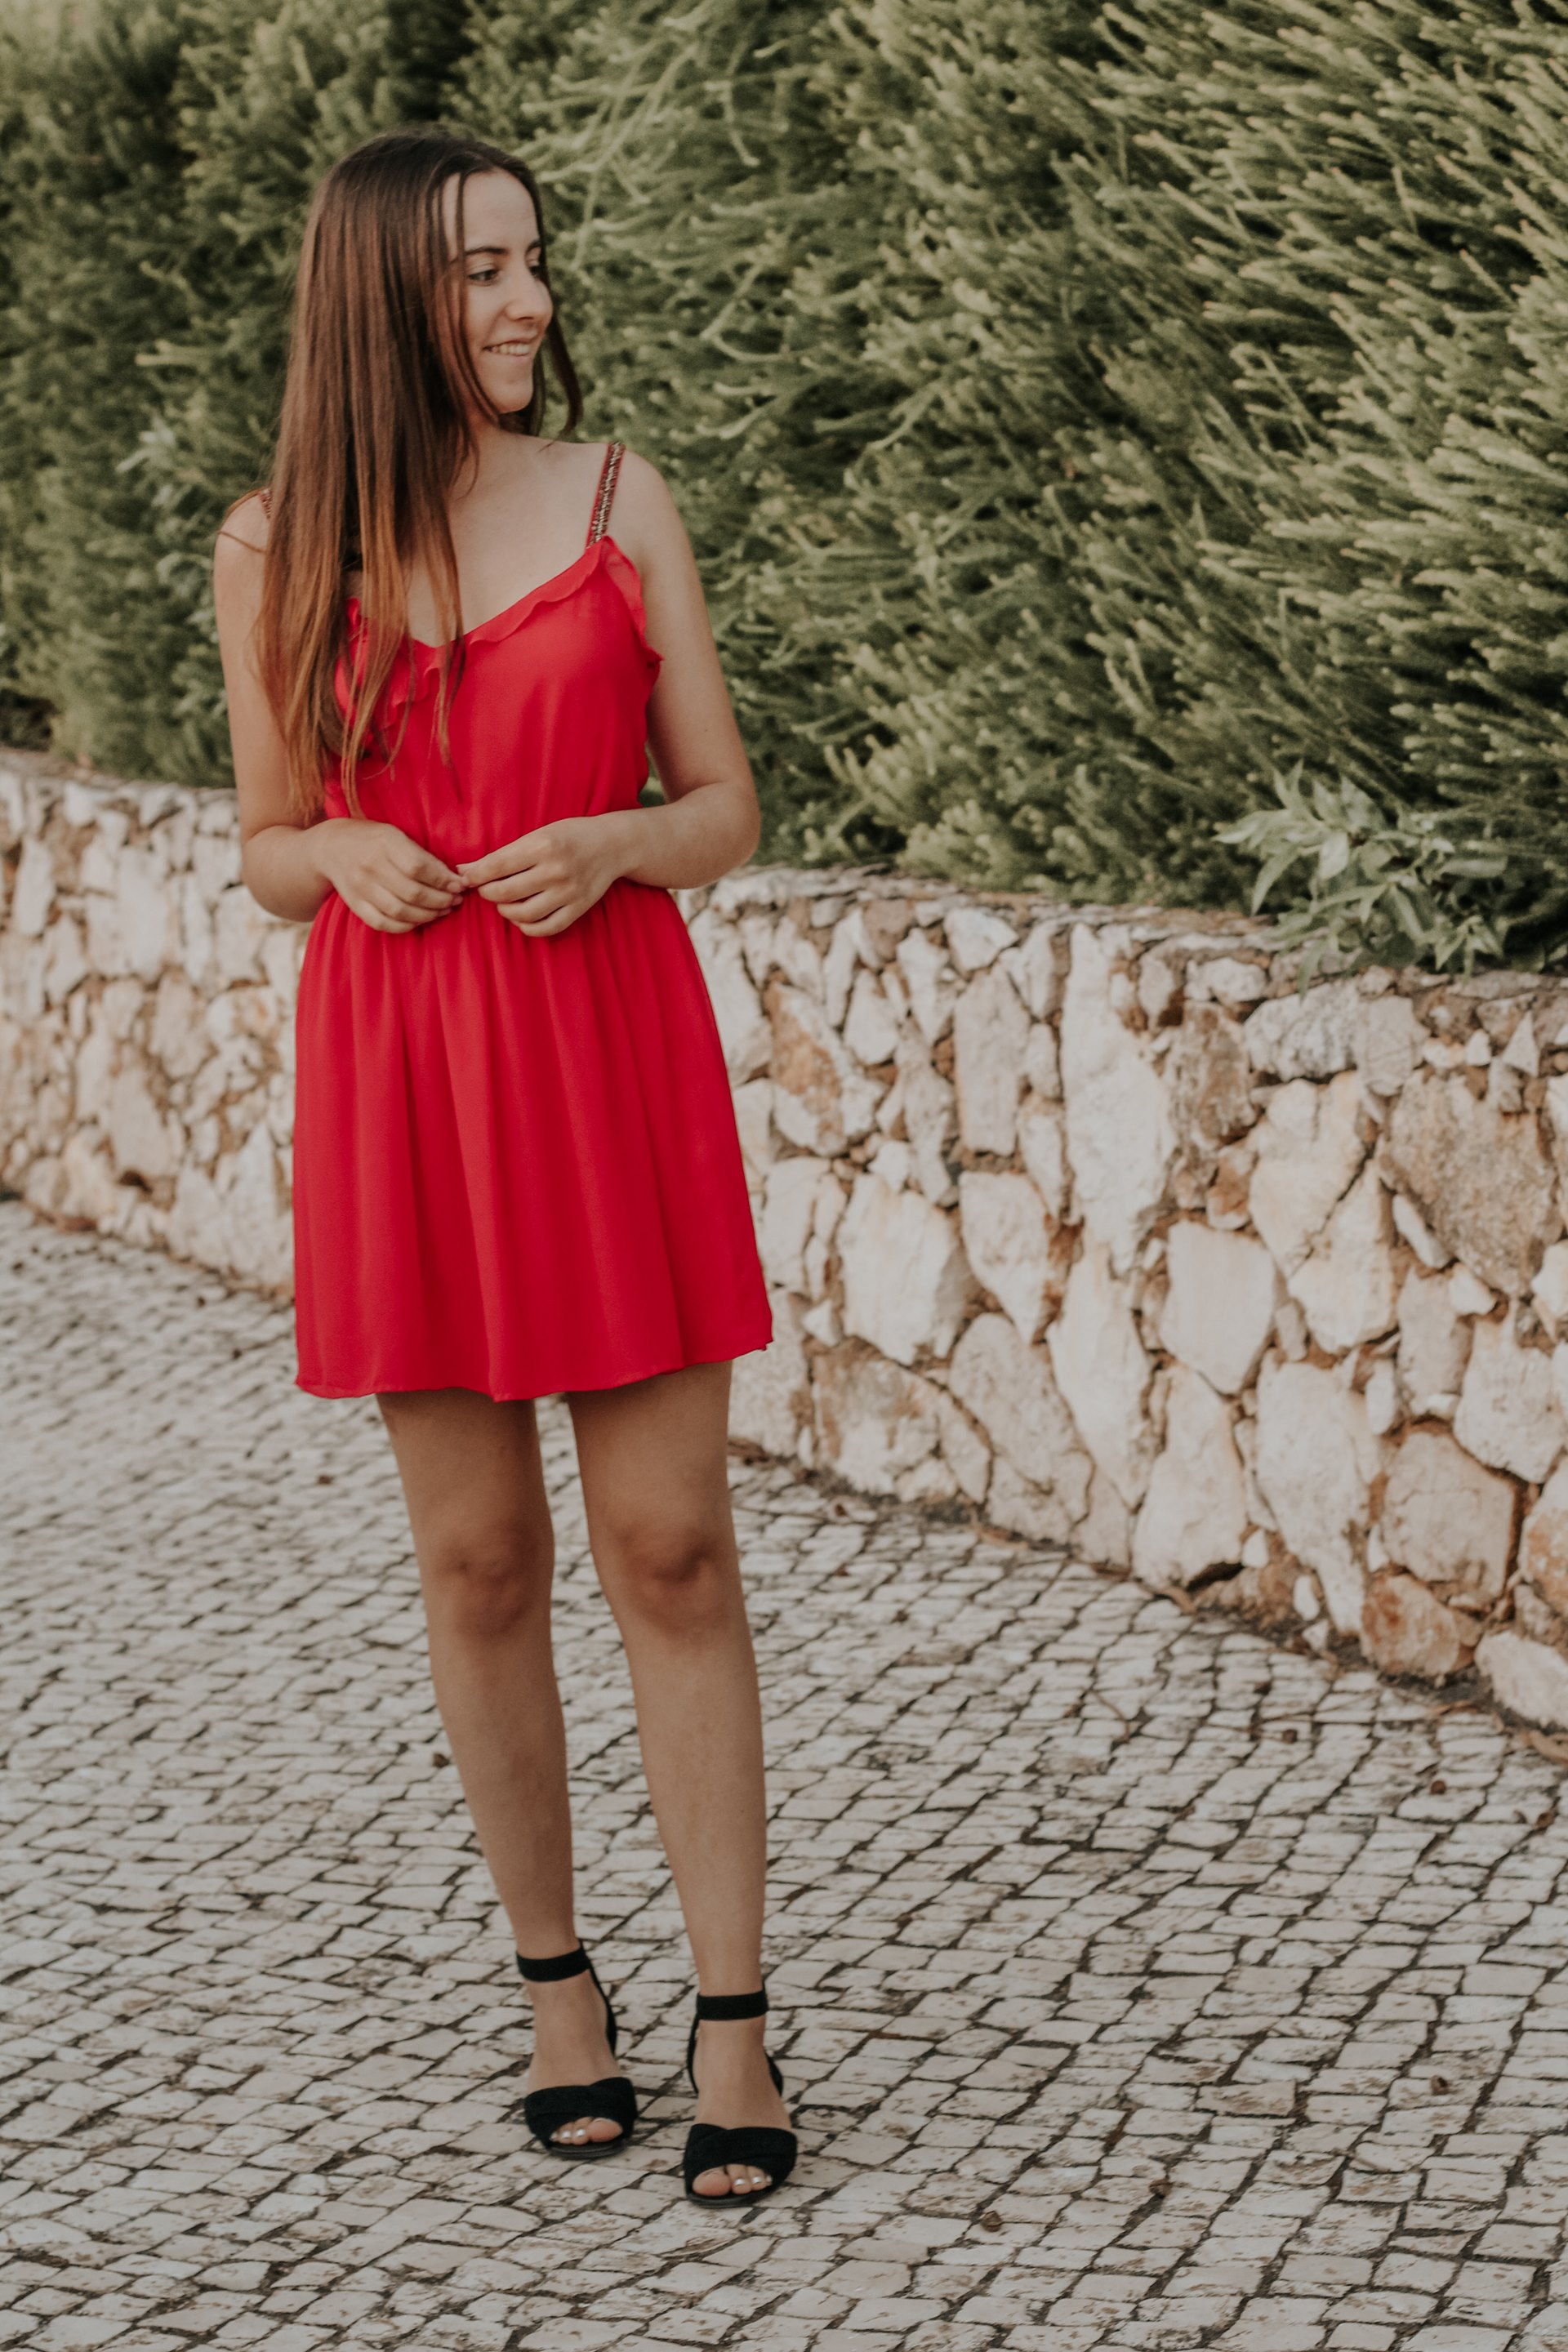 zara_red_dress_outfit_rockport_sandals